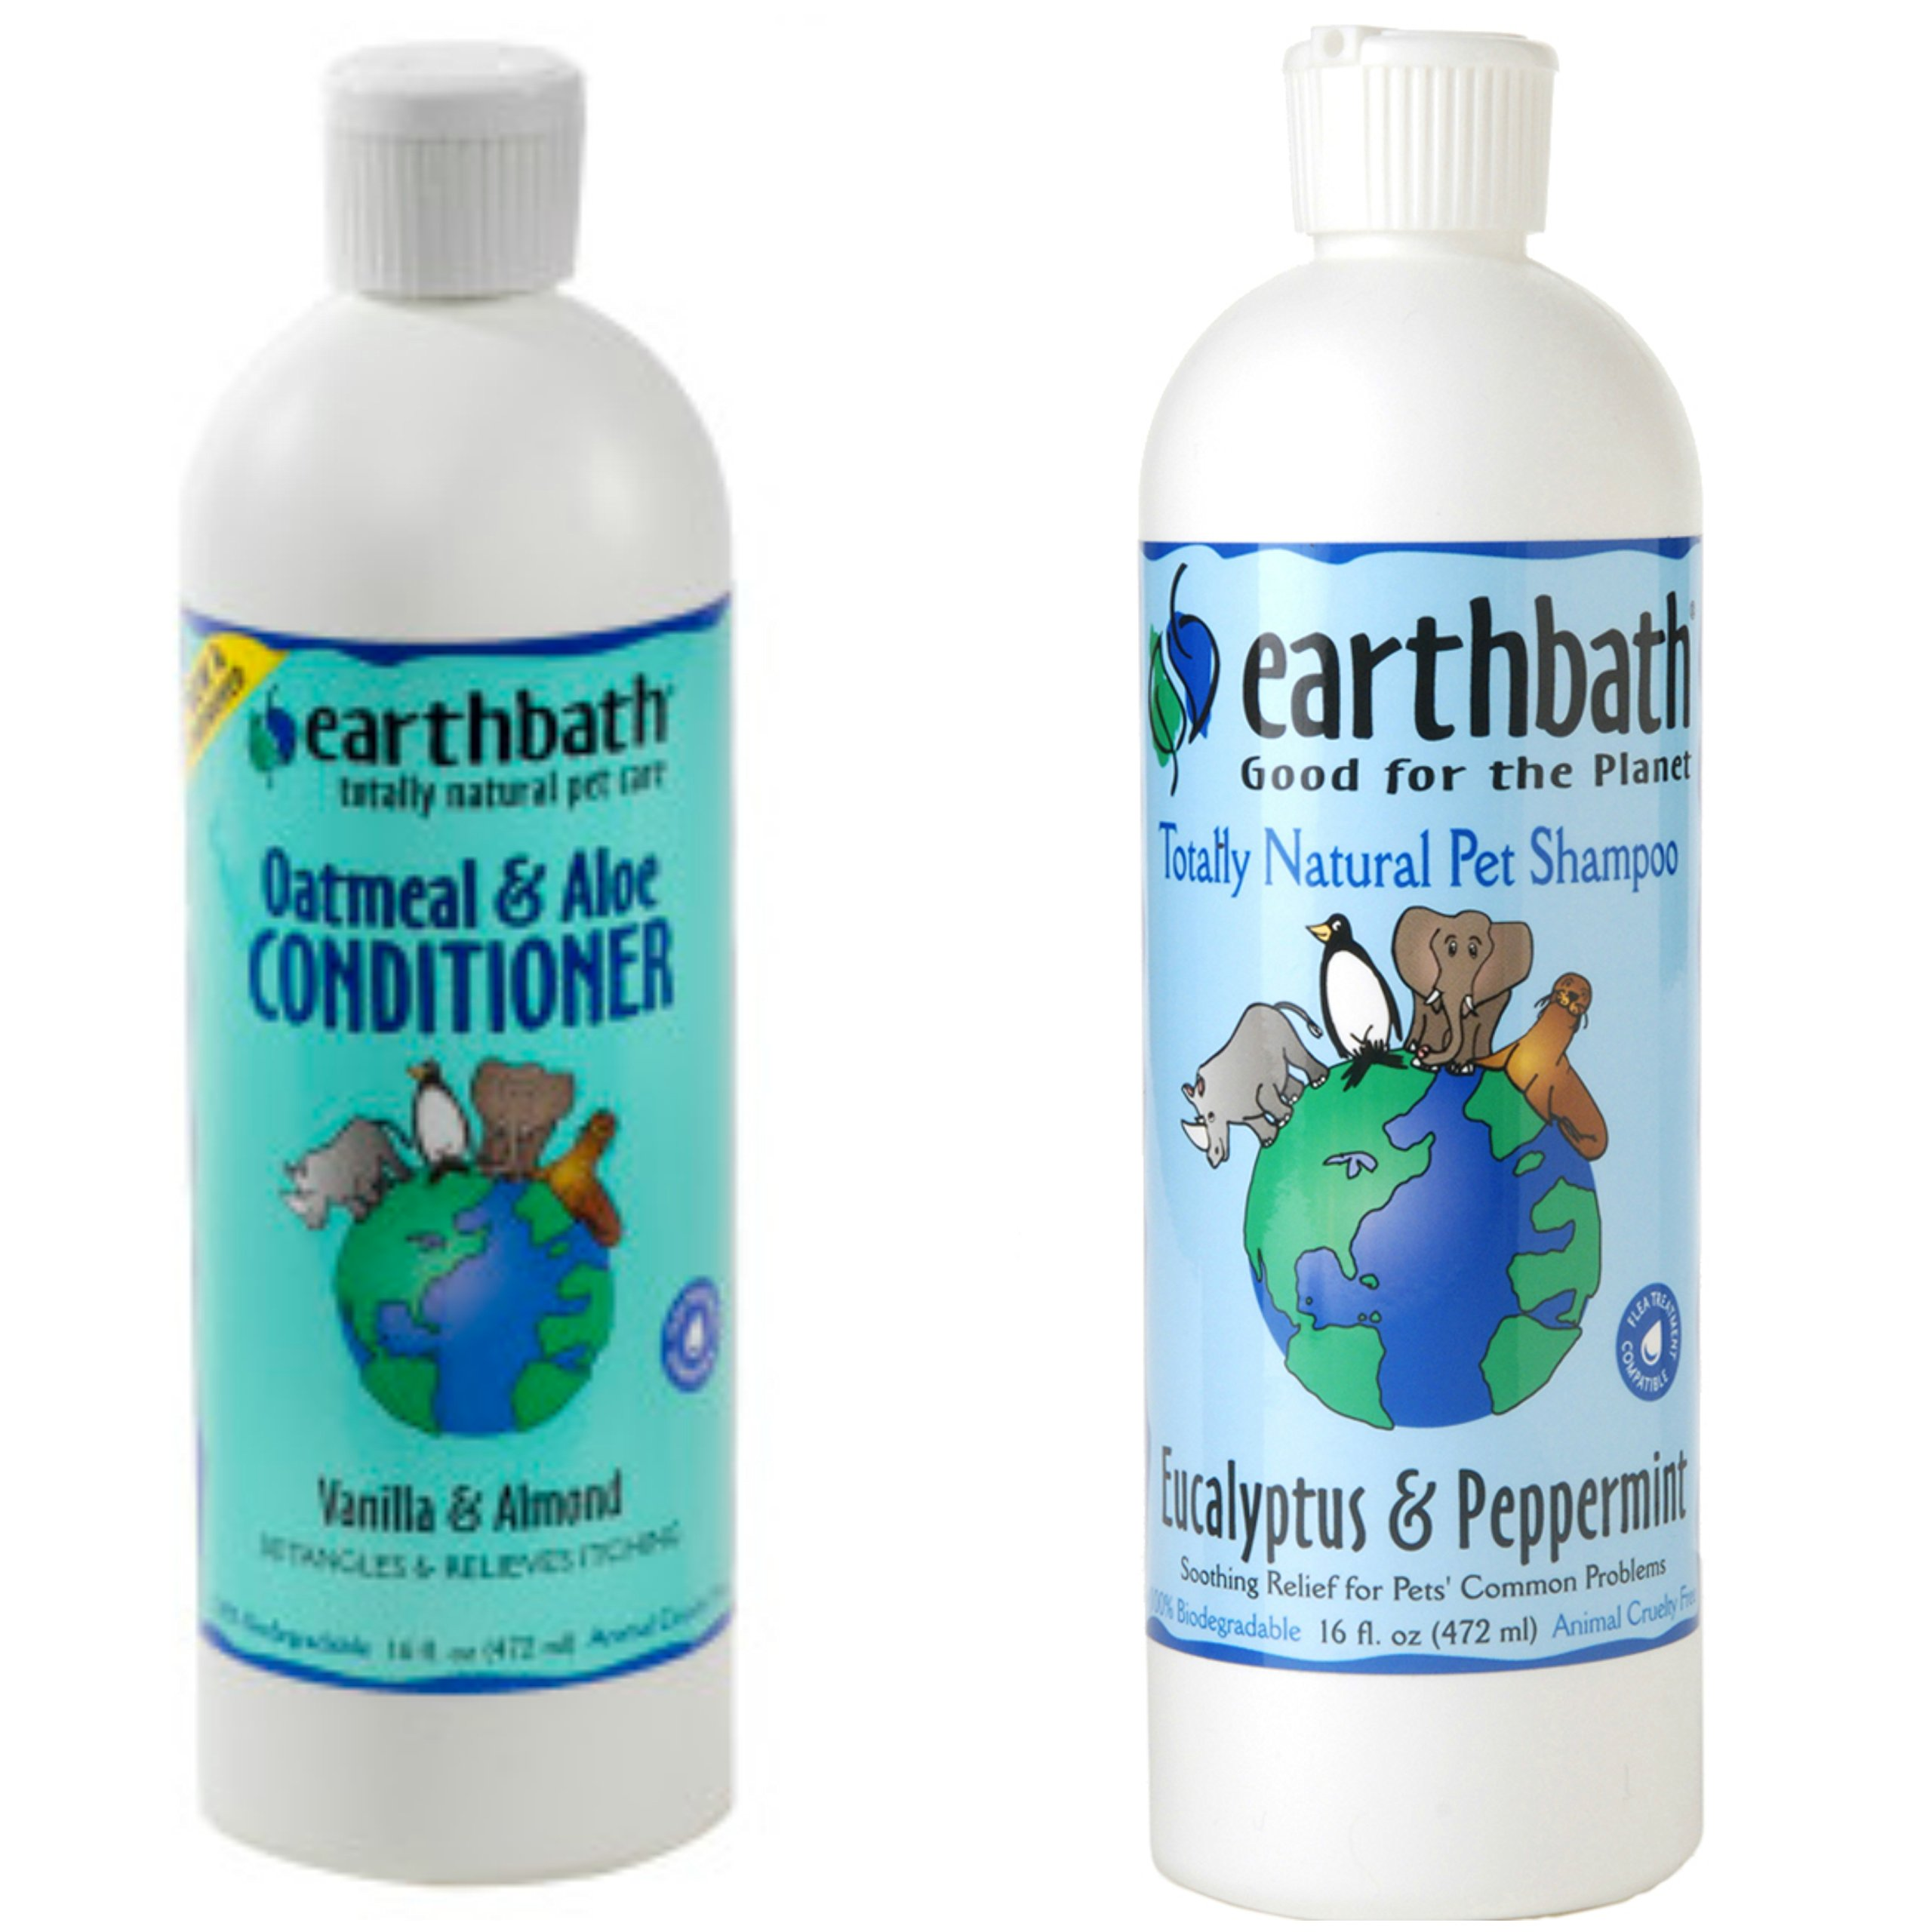 Earthbath Eucalyptus and Peppermint Shampoo for Dogs and Cats, 16 Oz Oatmeal and Aloe Conditioner for Dogs and Cats, 16 oz